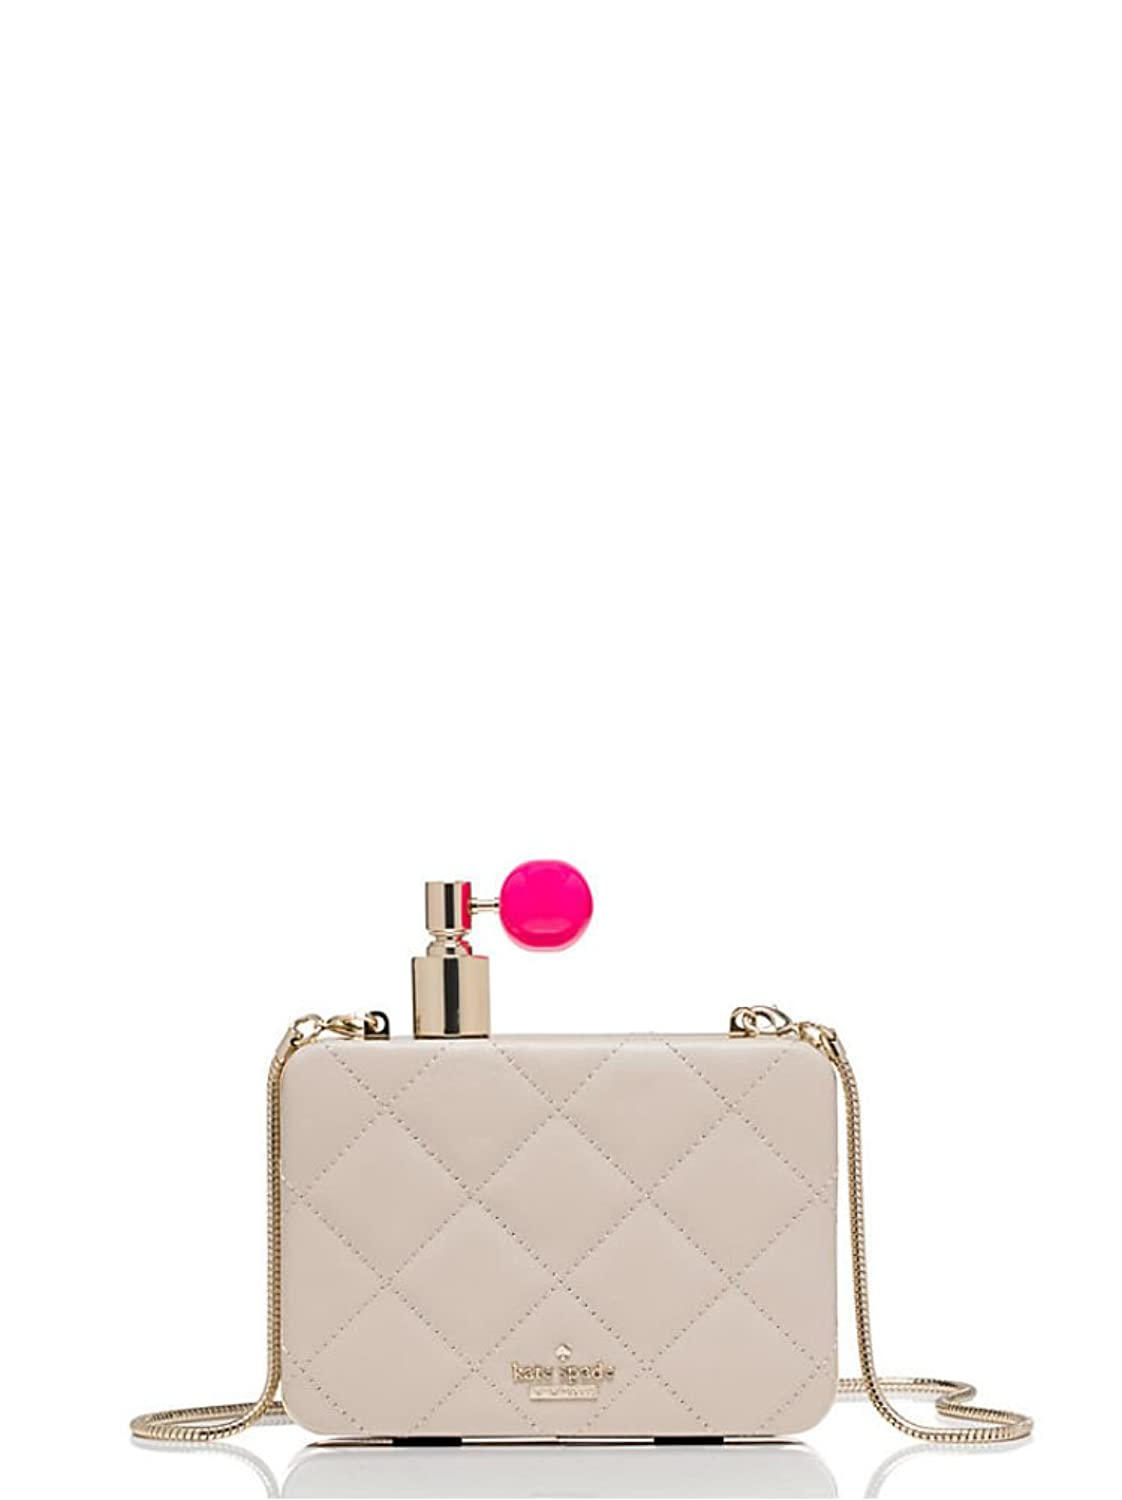 Kate Spade New York On Pointe Perfume Bottle Clutch, Multi